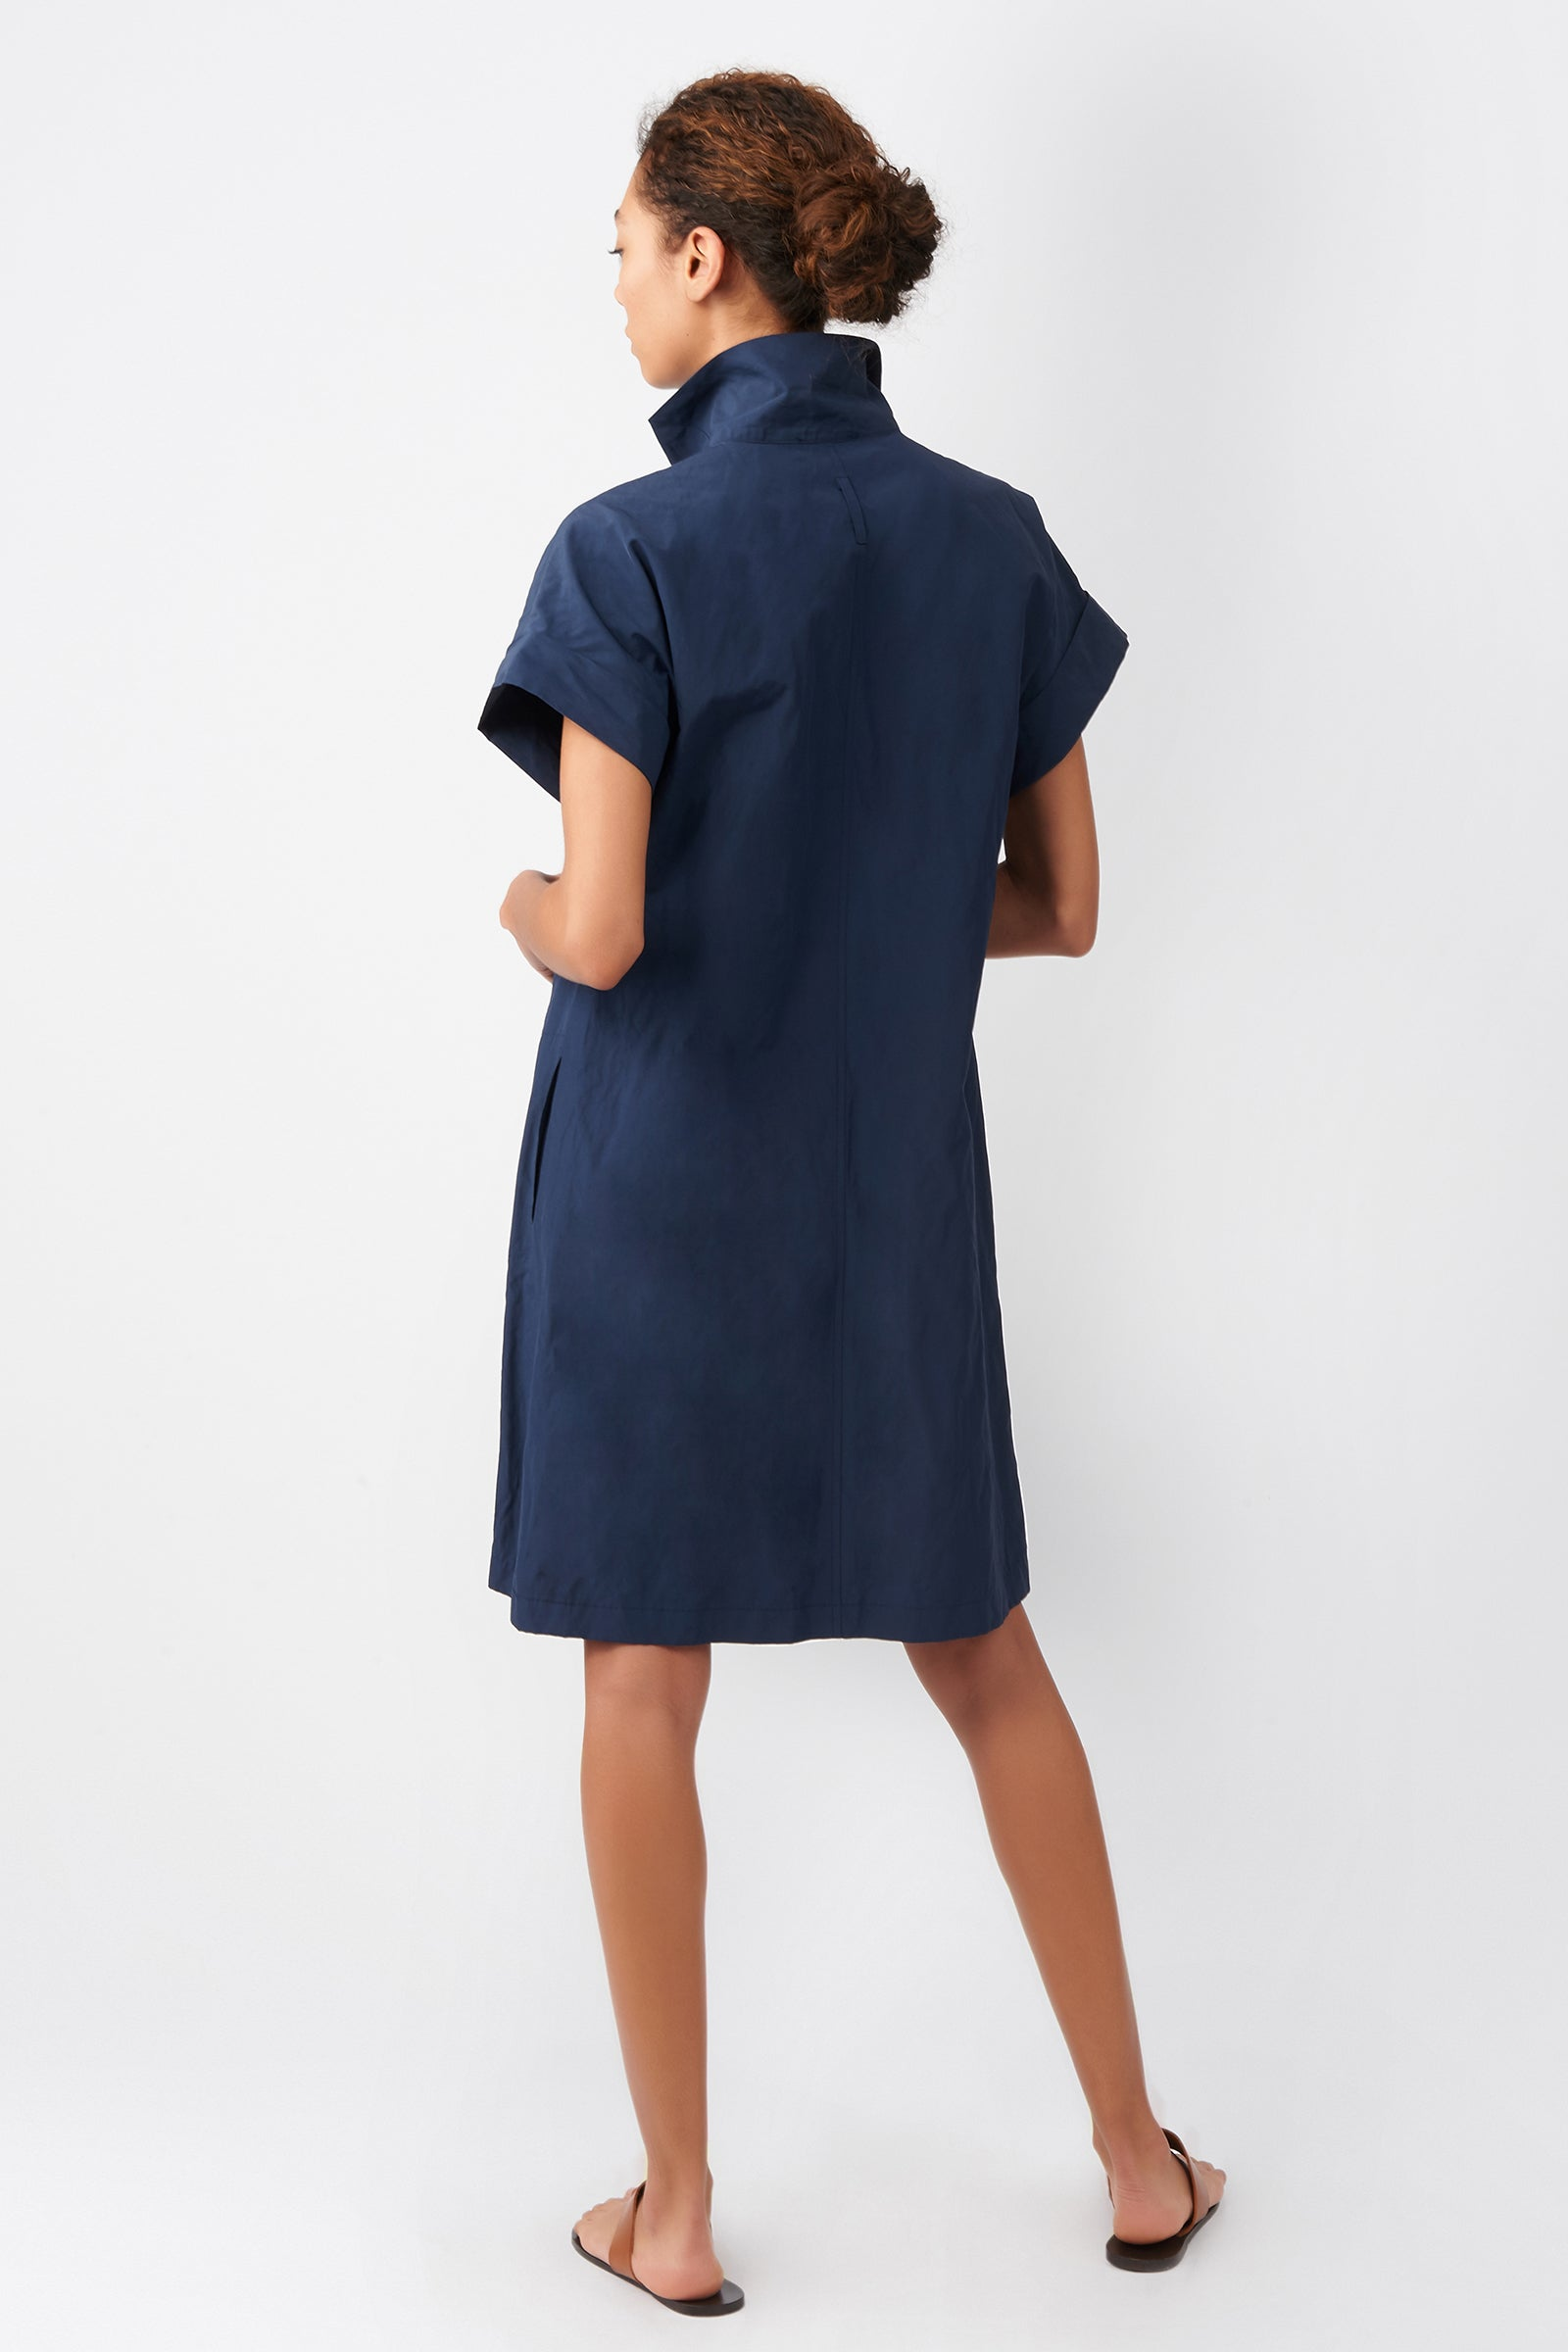 Kal Rieman Kimono Dress in Navy on Model Front View